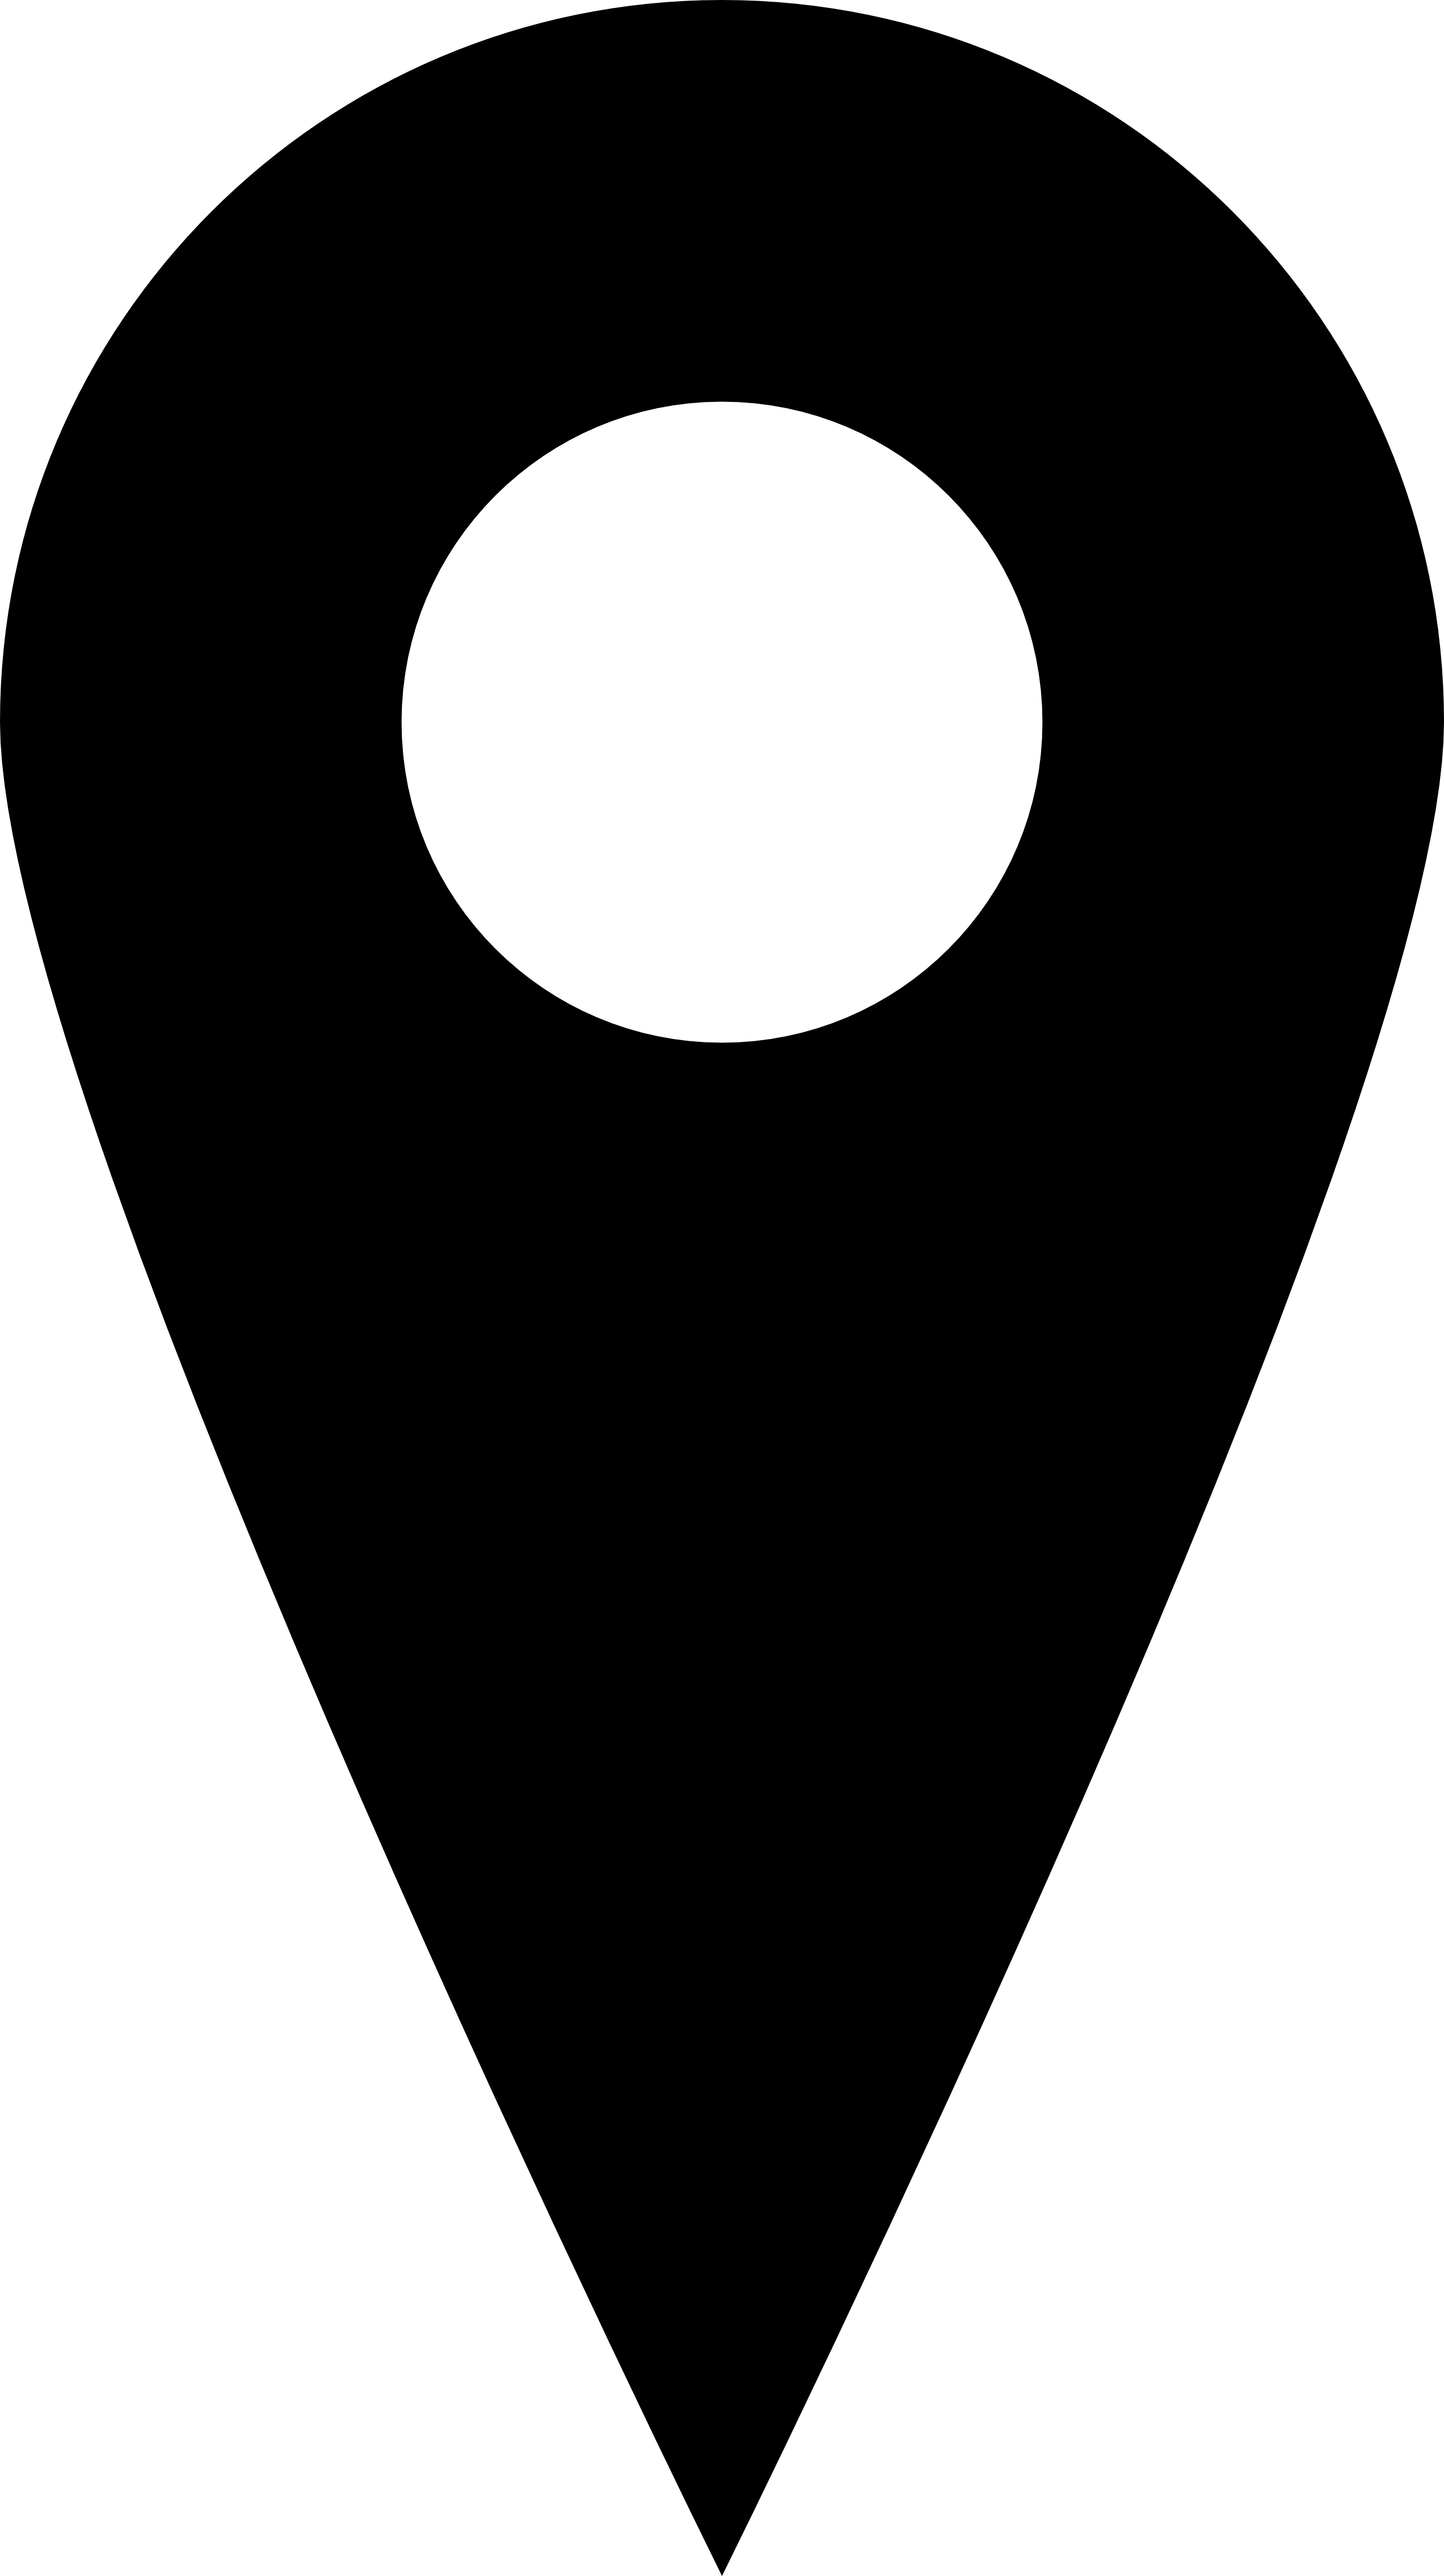 Pin black and white. Location icon png